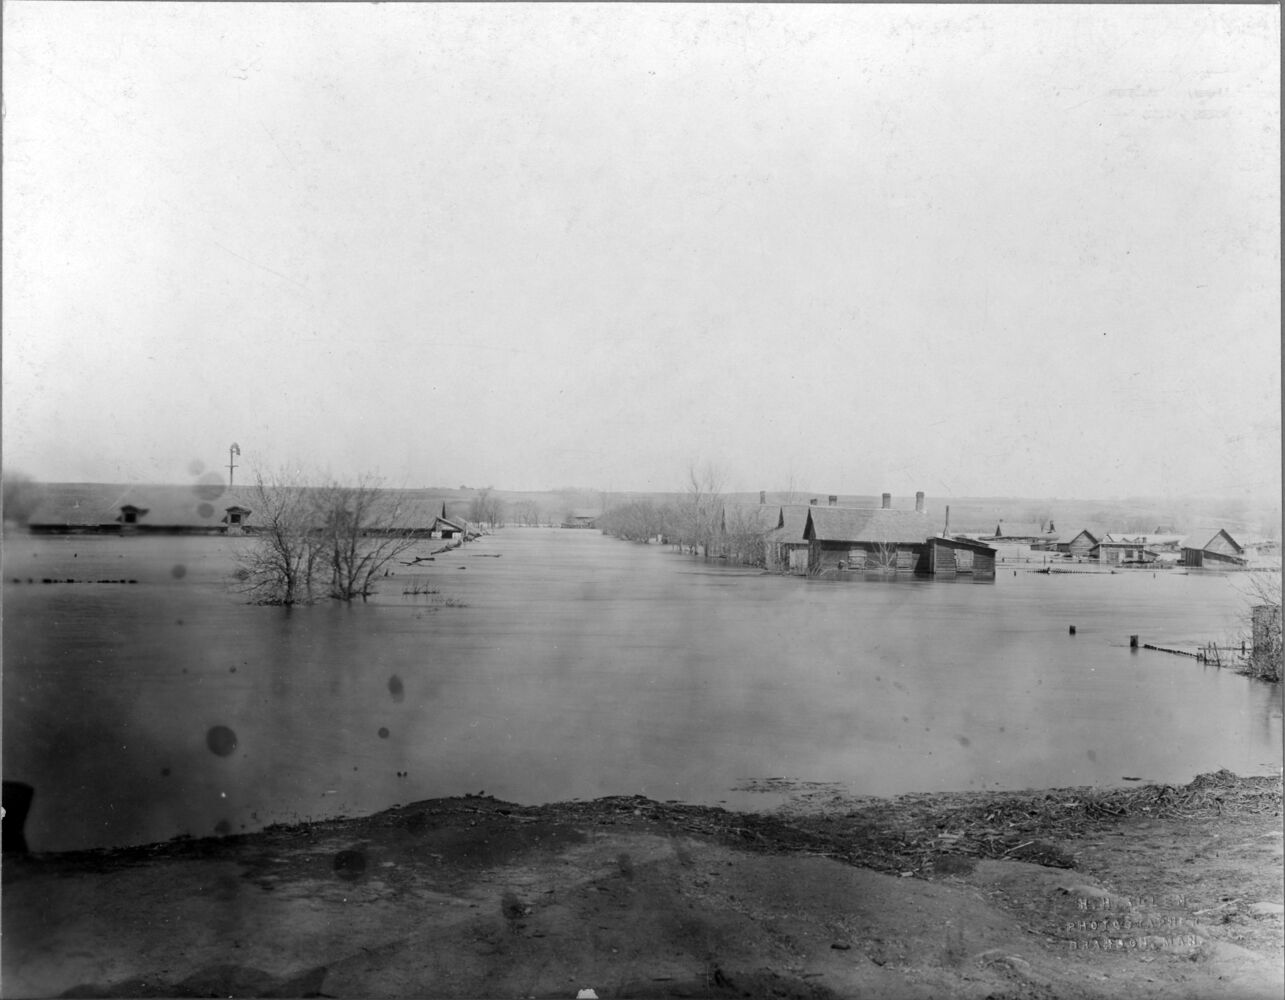 """An image of houses on the Assiboine floodplane (Brandon's """"flats"""") submerged in flood-waters. The """"flats"""" refers to the Assiniboine River floodplane from 18th Street to First Street on either side of the river. See p. 223 of G.F. Barker's Brandon: A City for a description of the 1922 flood.  (H.H. Allen image, BAPC, S.J. McKee Archives)"""